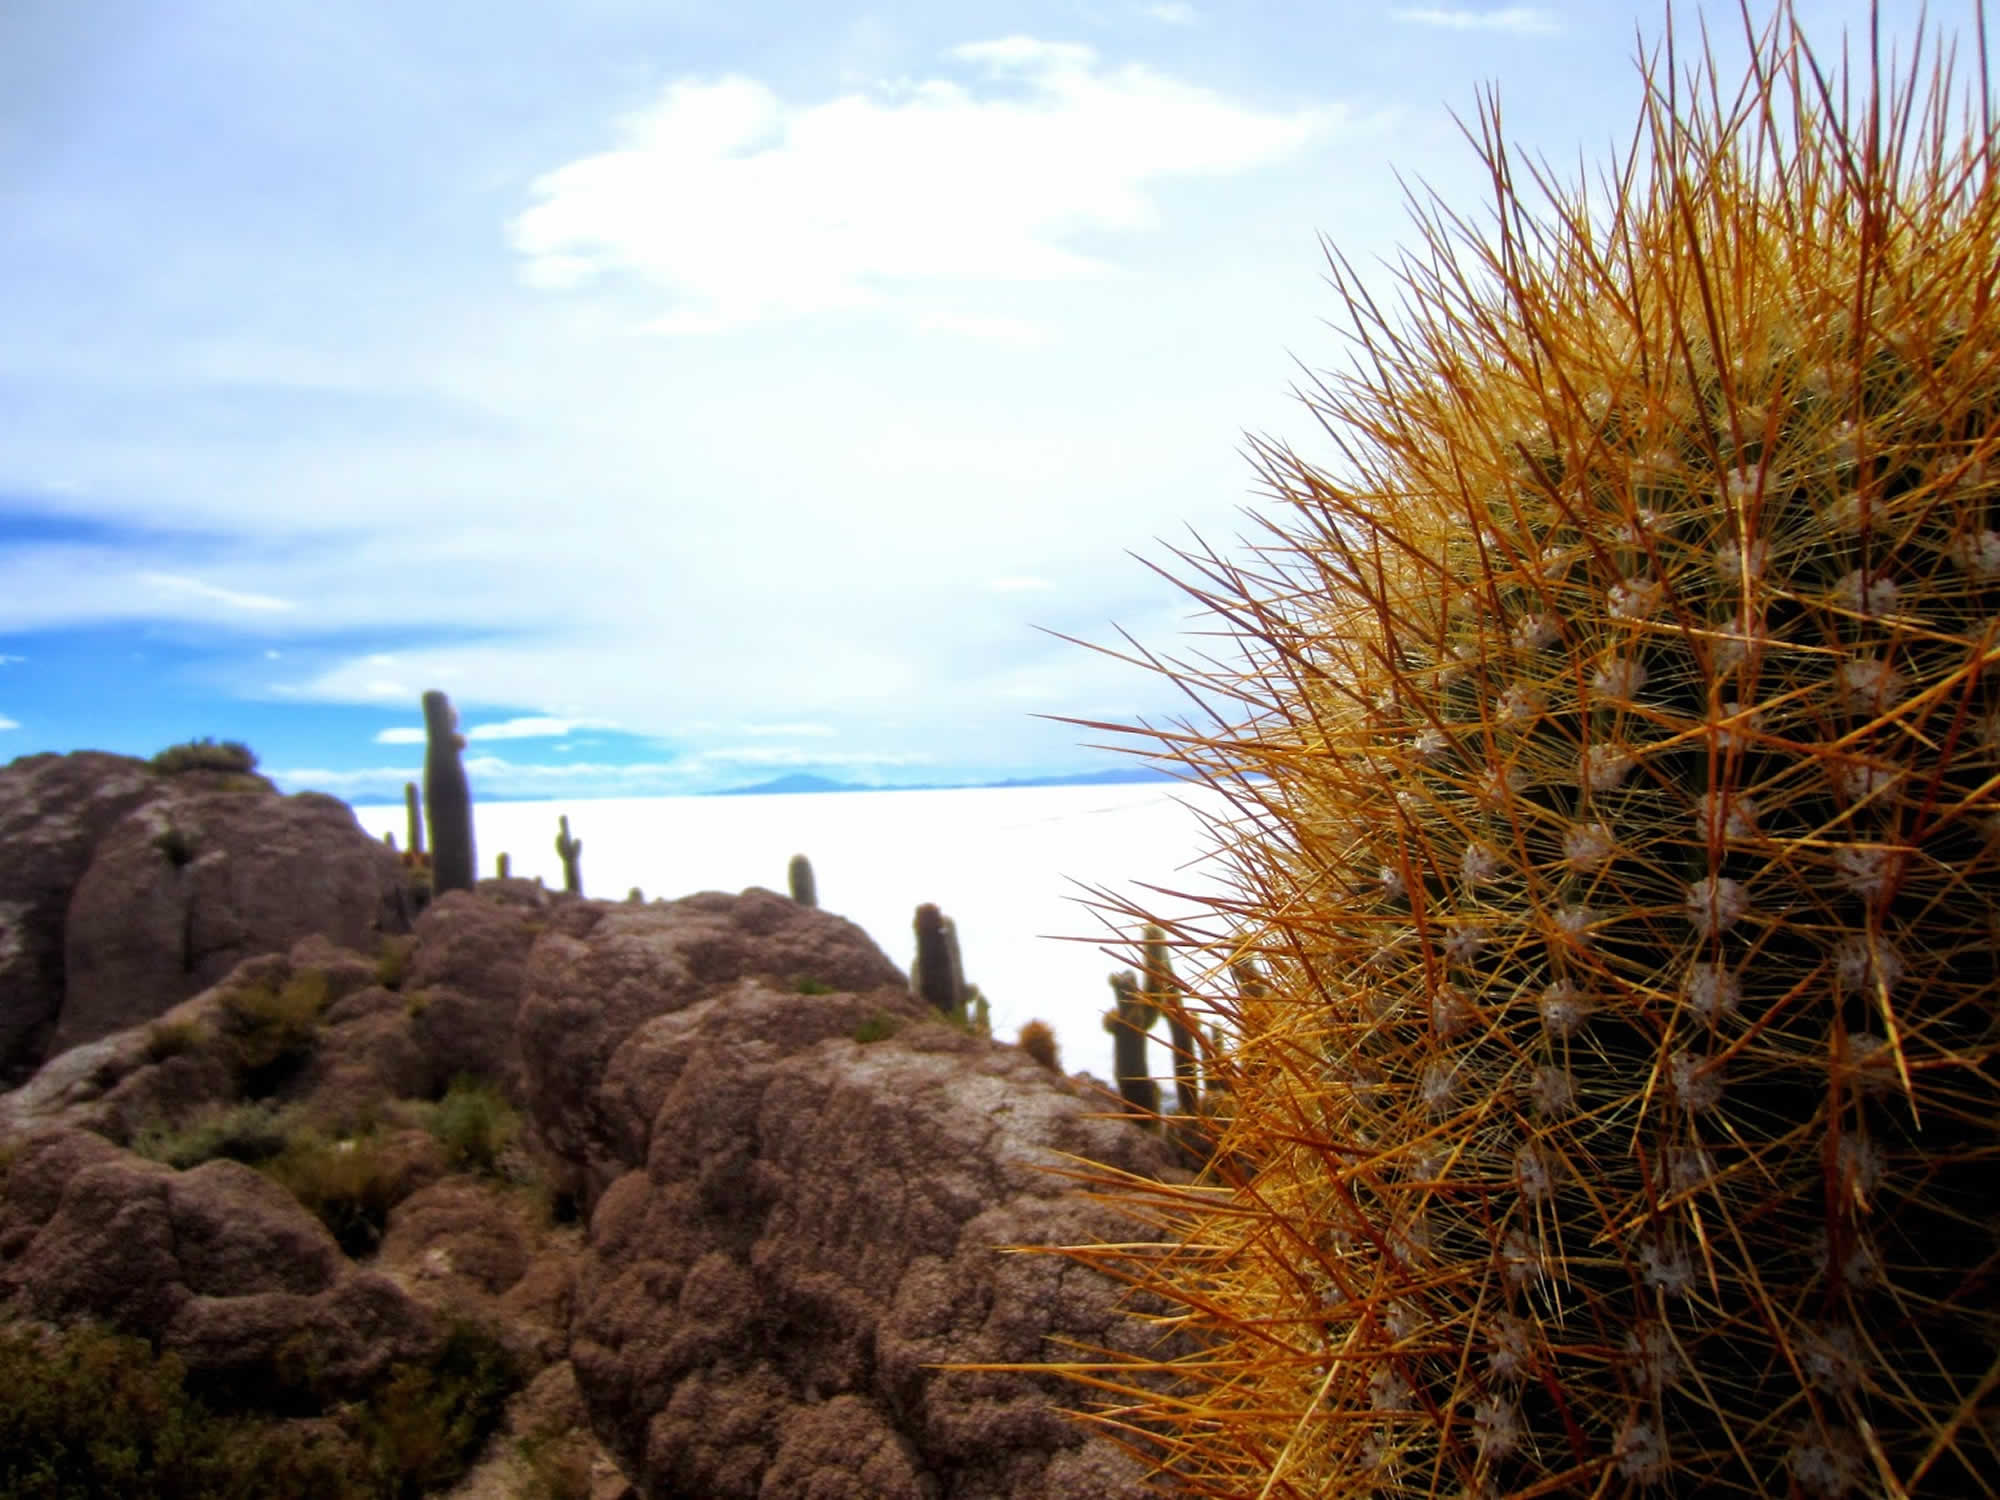 These cacti can grow several meters tall